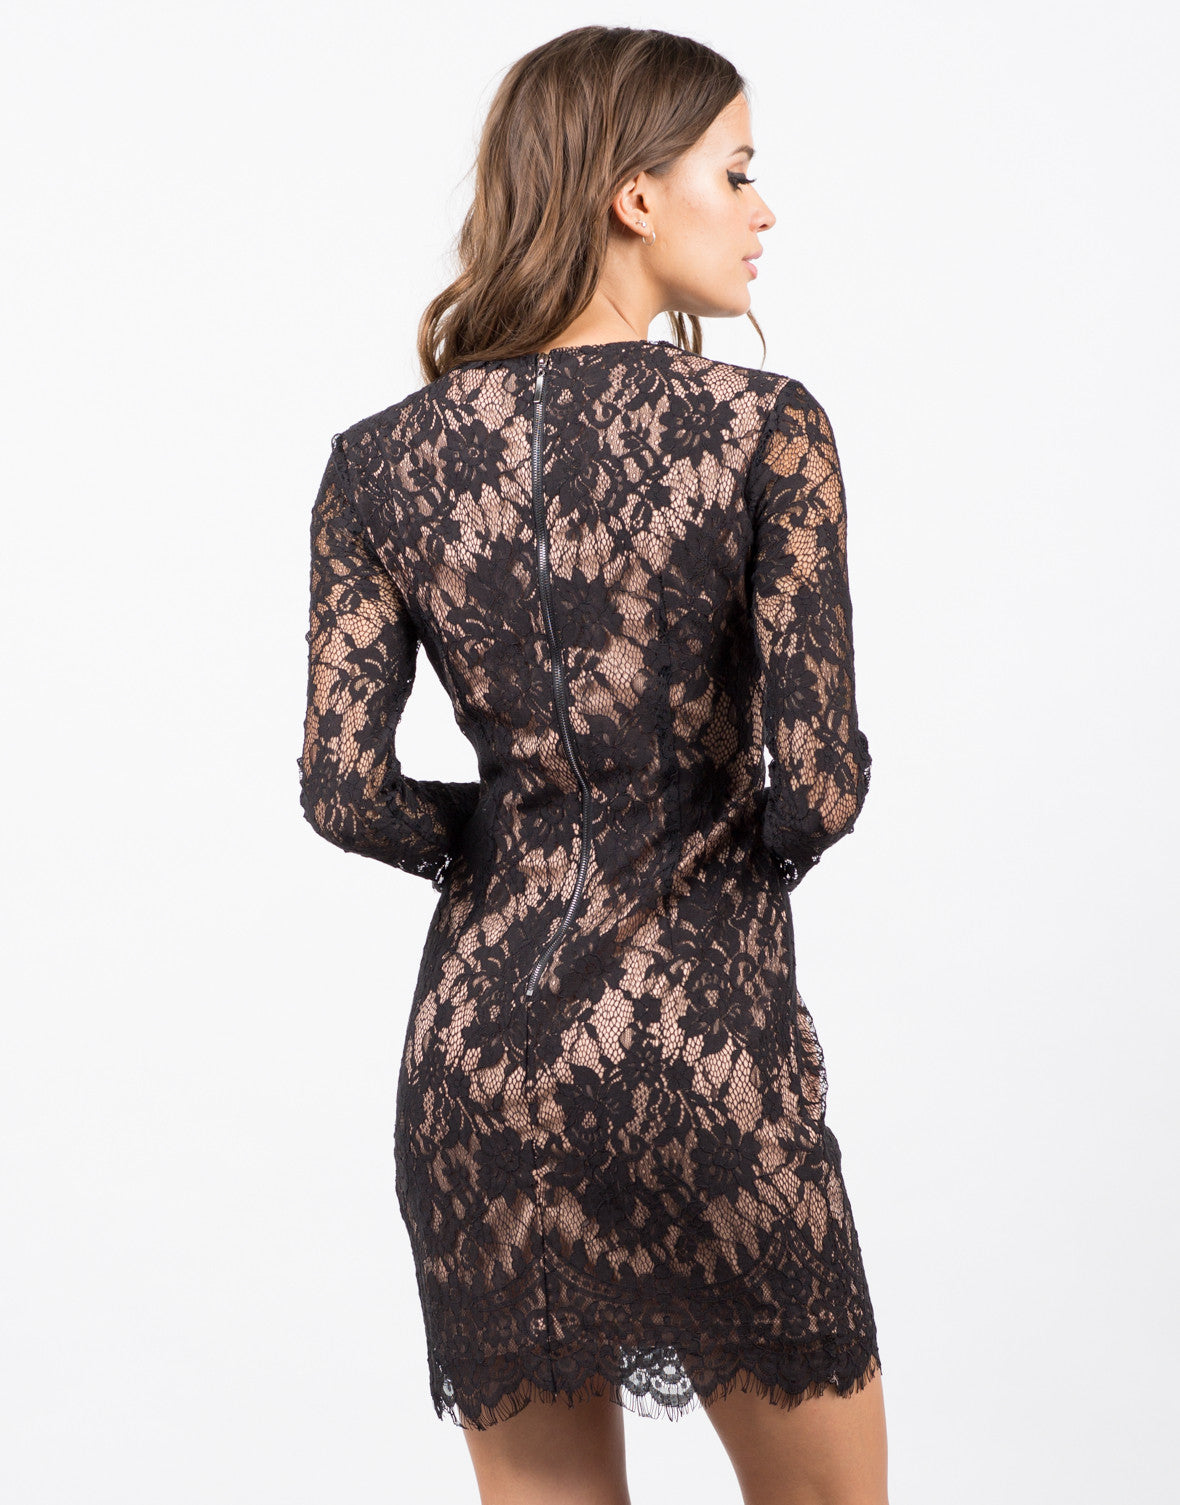 Back View of Floral Lace Overlay Dress